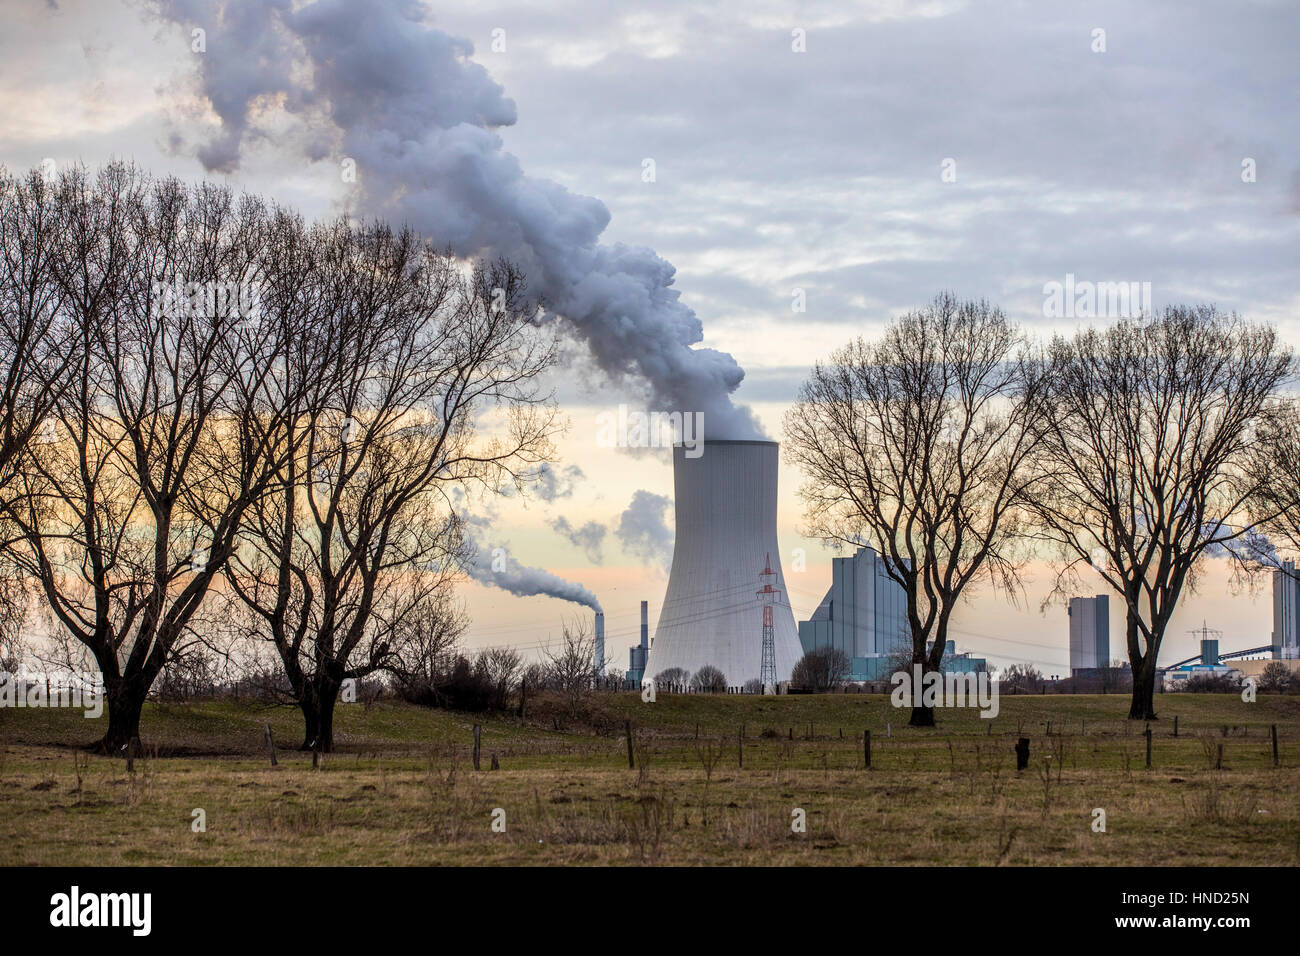 Cooling tower of coal power plant  Duisburg Walsum, Block 10, Germany, - Stock Image